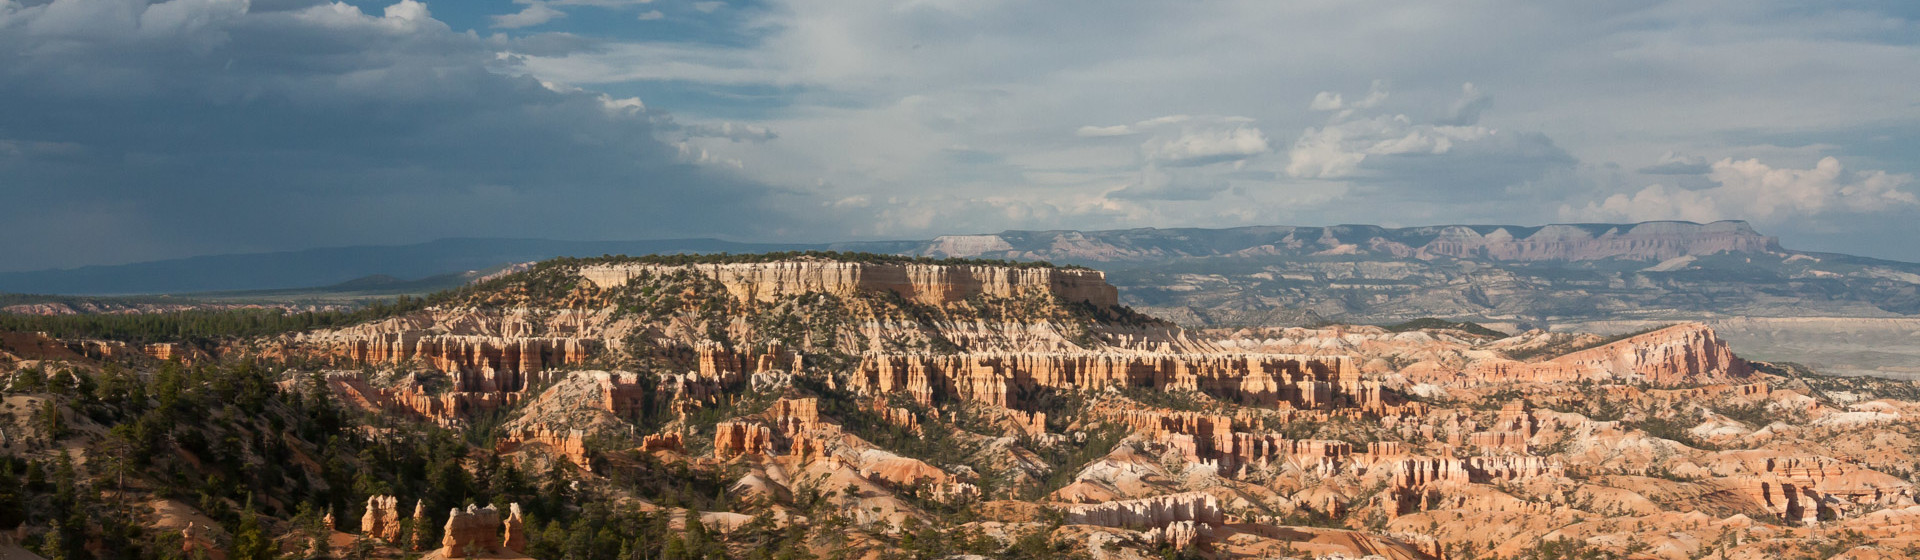 16./17.6. Bryce Canyon - Rim Trail